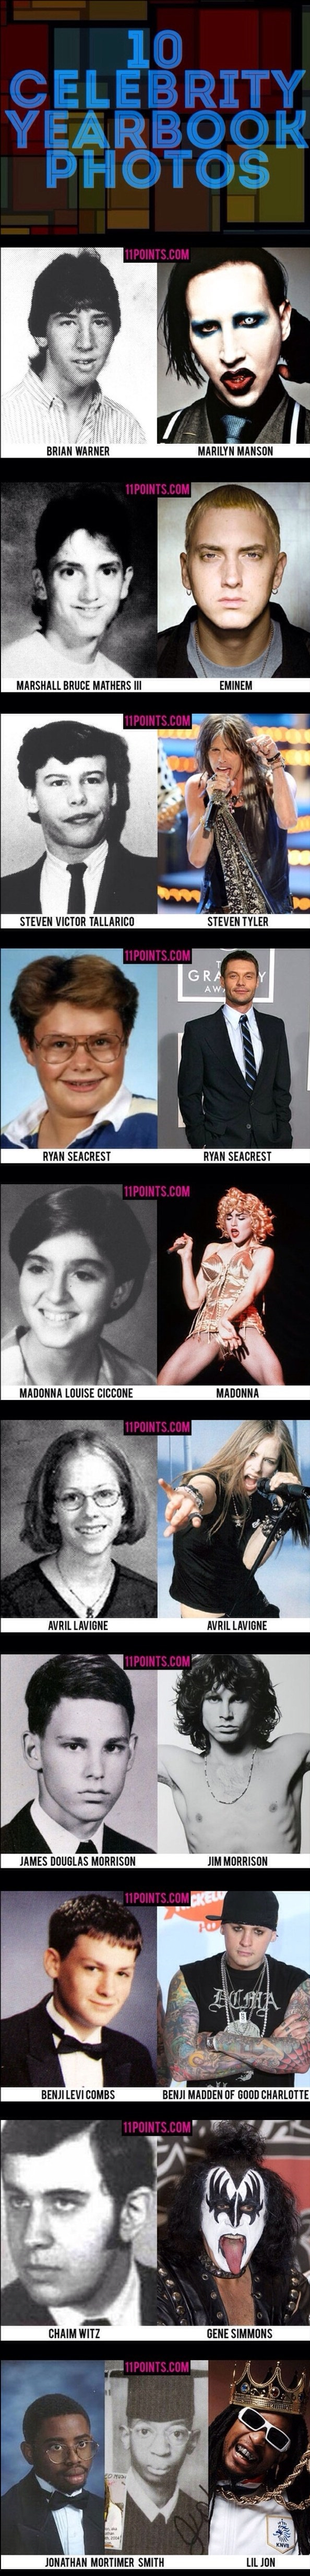 funny-picture-celebs-yearbook-photos